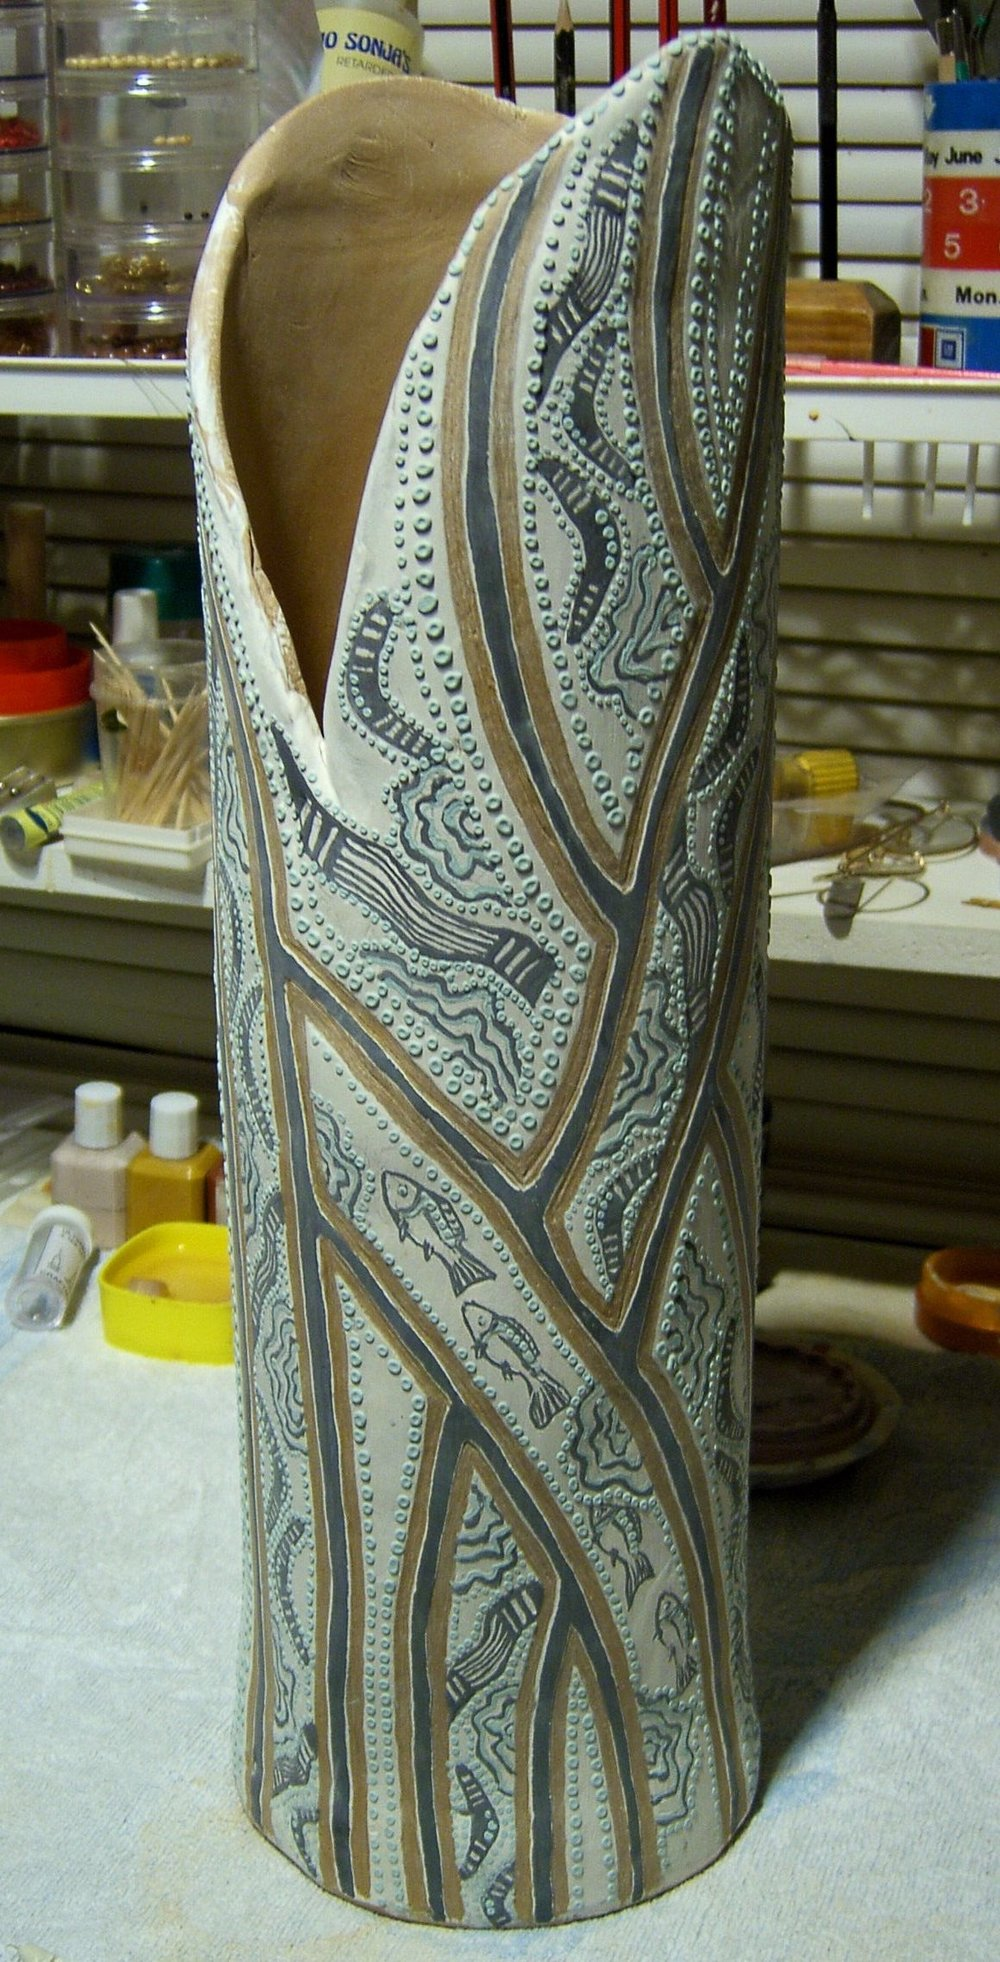 Tall vase with fish pattern